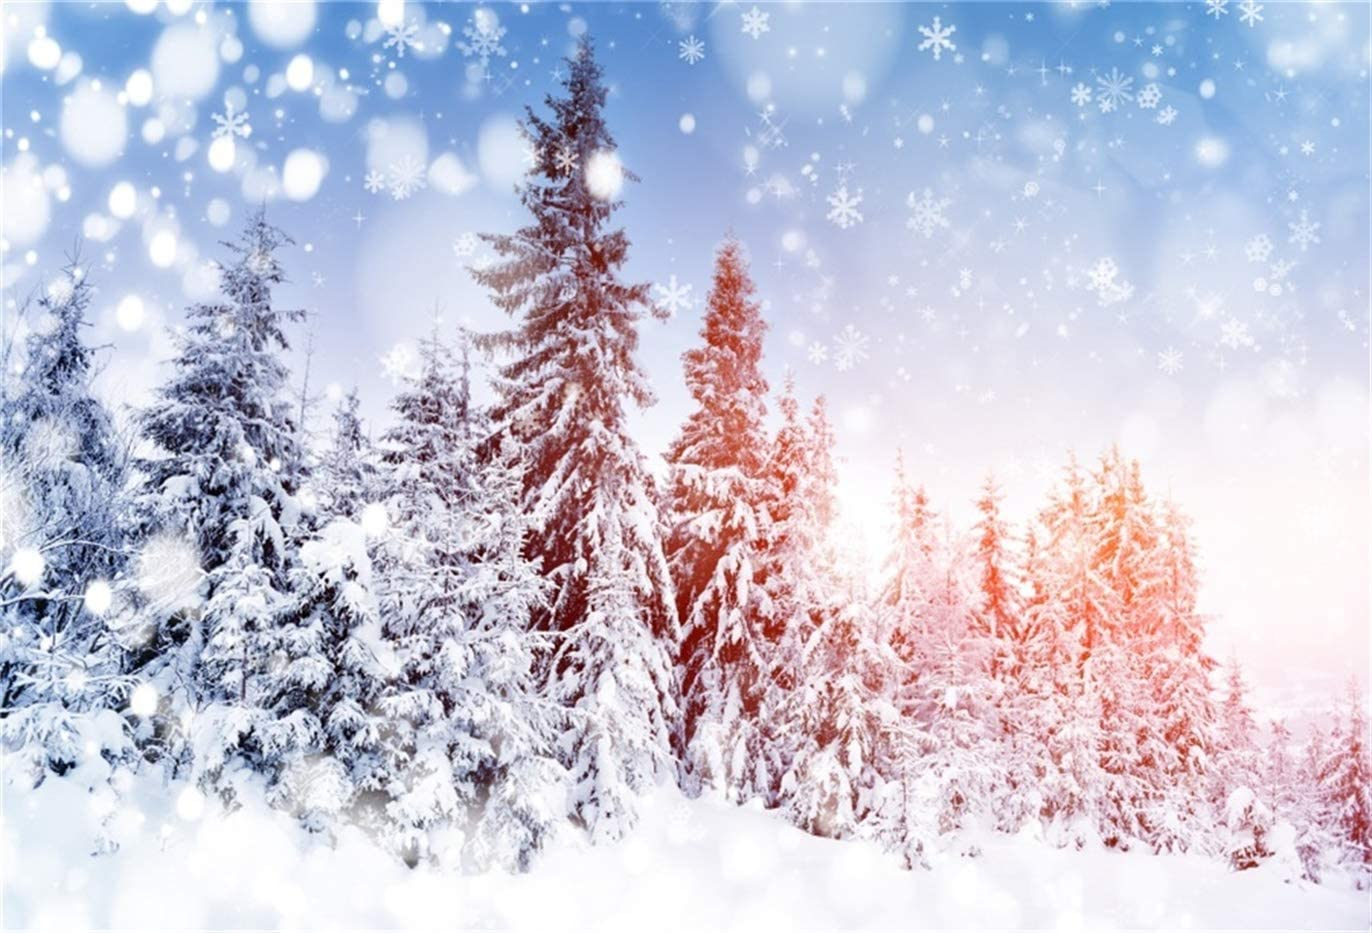 GoEoo 10x8ft Snow Covered Trees Background Merry Christmas Snowflake Forest Snowy Landscape Photography Backdrop Winter Snowfield Fir Pine Trees New Year Holiday Decor Photo Studio Props Vinyl Banner